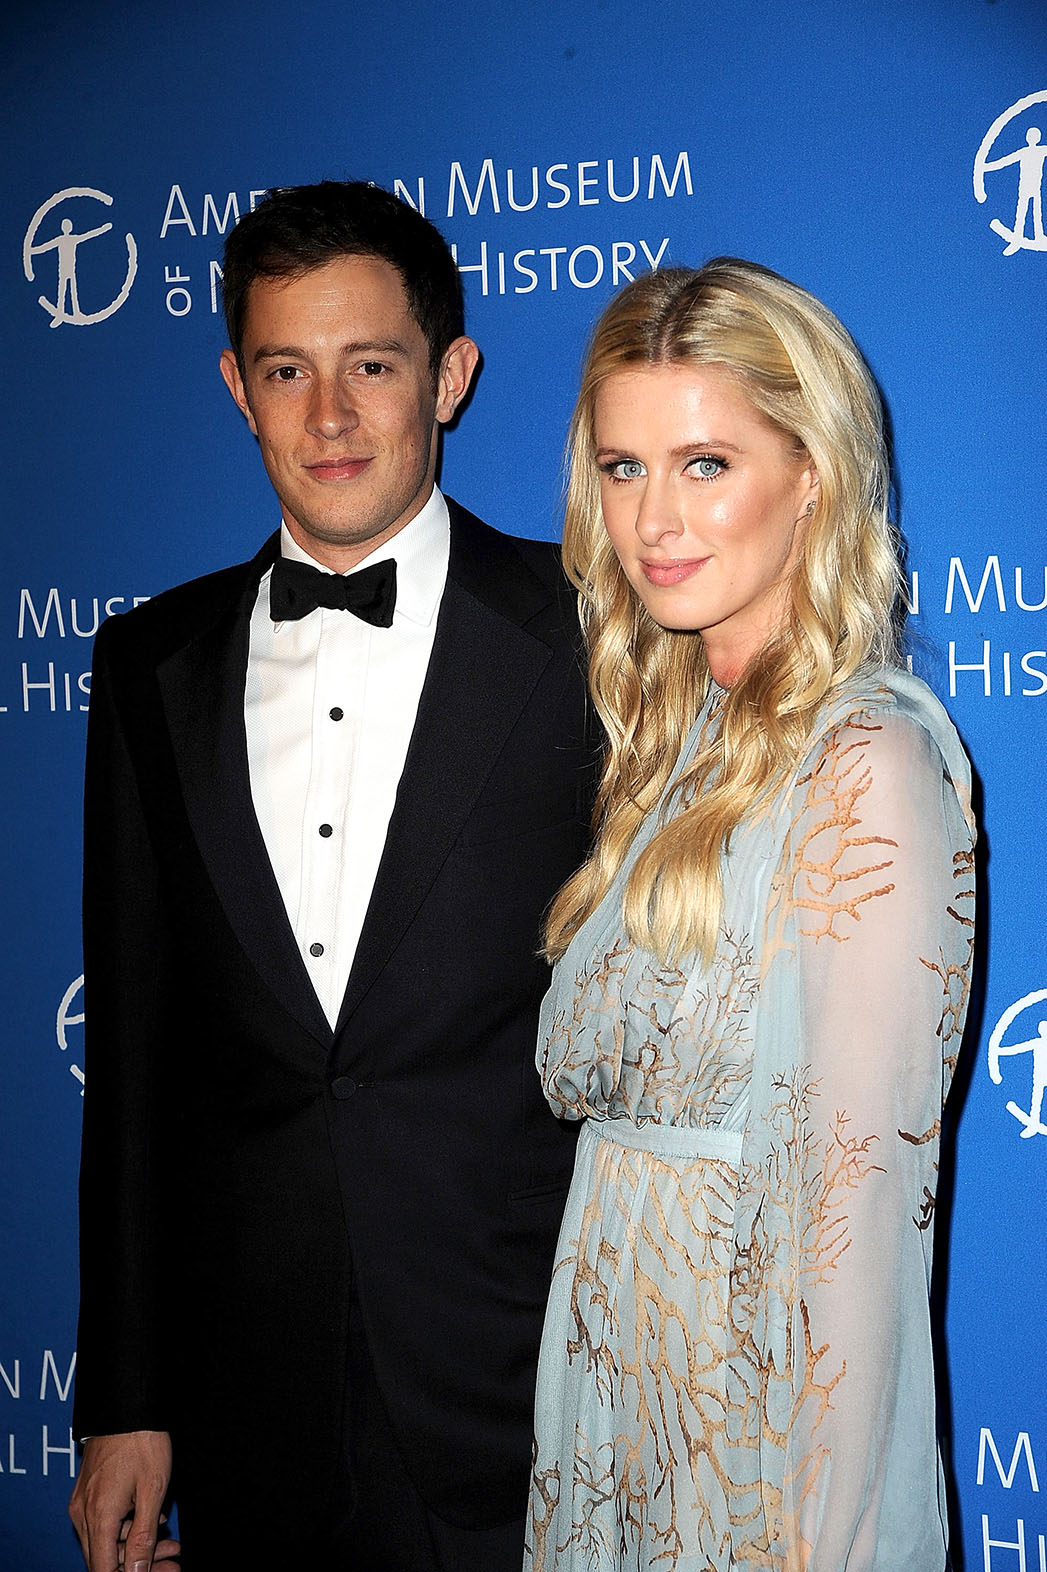 James Rothschild and Nicky Hilton Getty P 2016